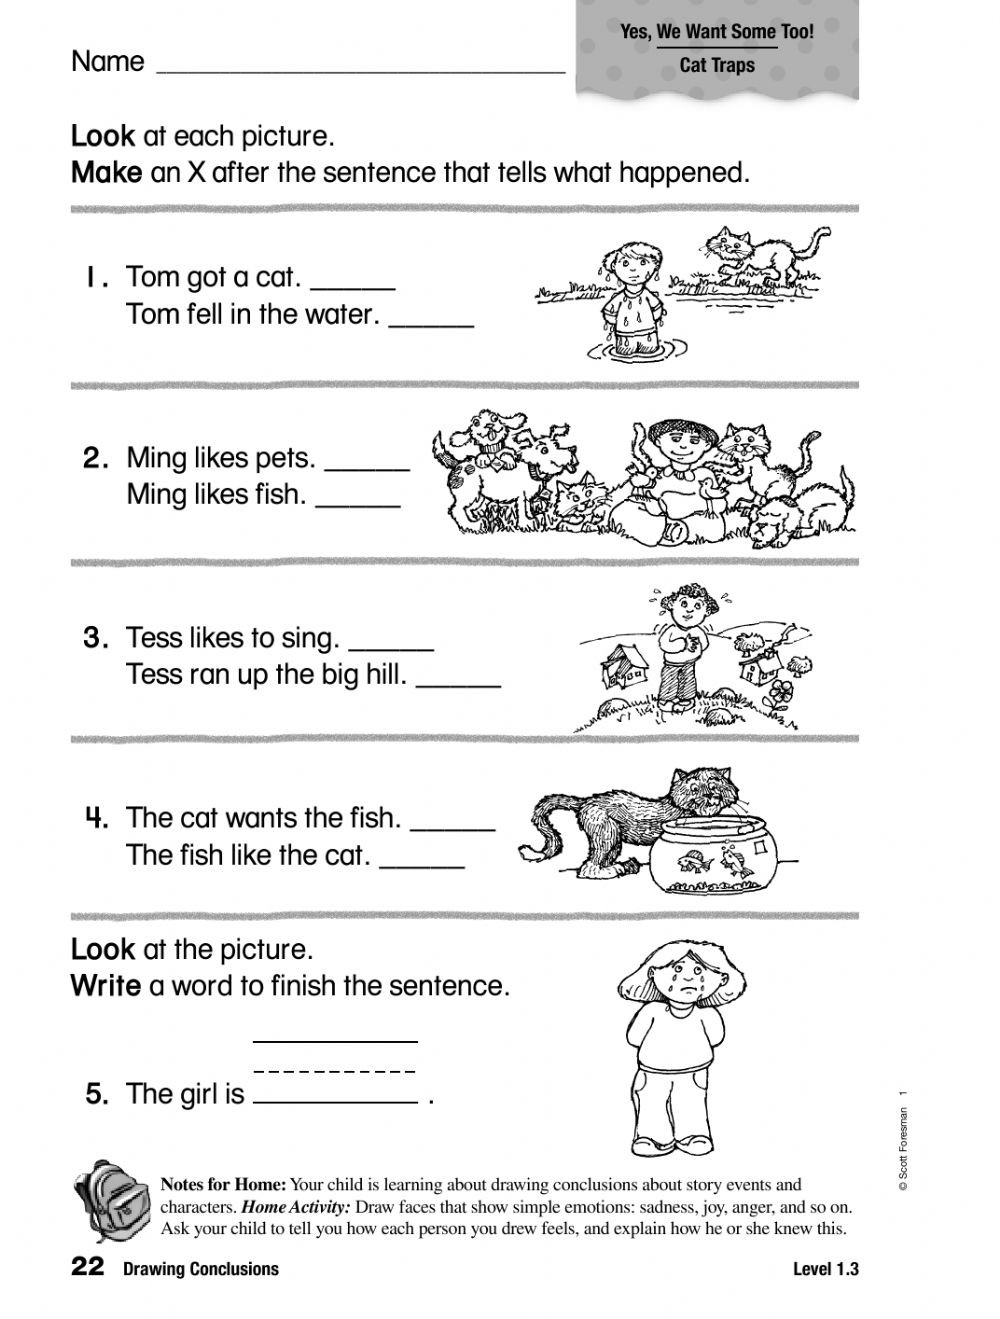 Draw Conclusions Worksheet 3rd Grade 3rd Grade Math Terms Abcd Handwriting Worksheets area and